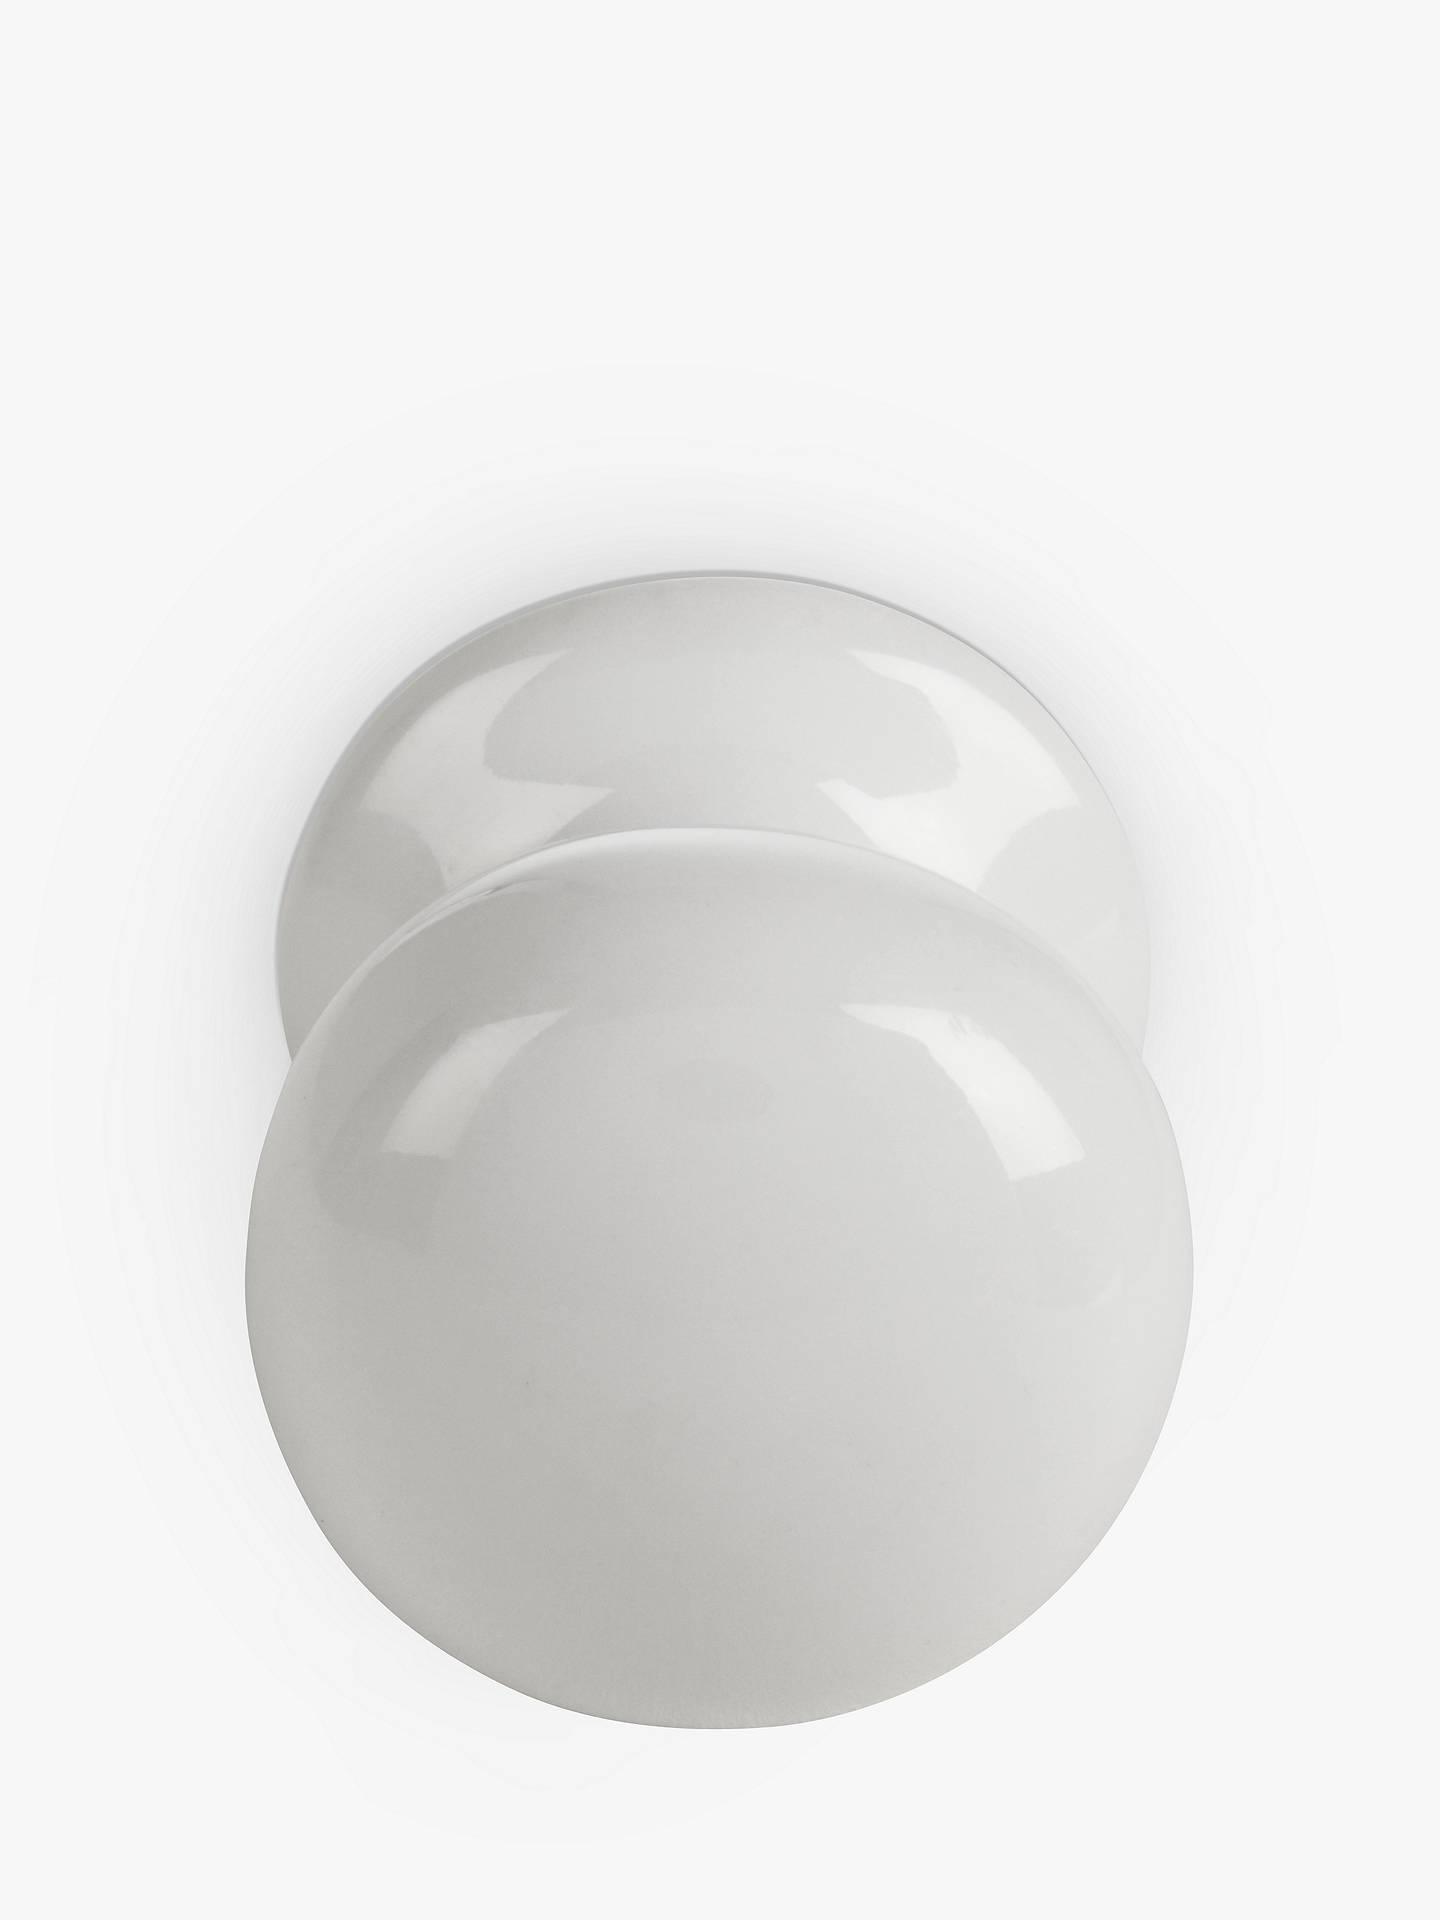 Buy John Lewis & Partners Cupboard Knob, White Porcelain, Dia.32mm Online at johnlewis.com